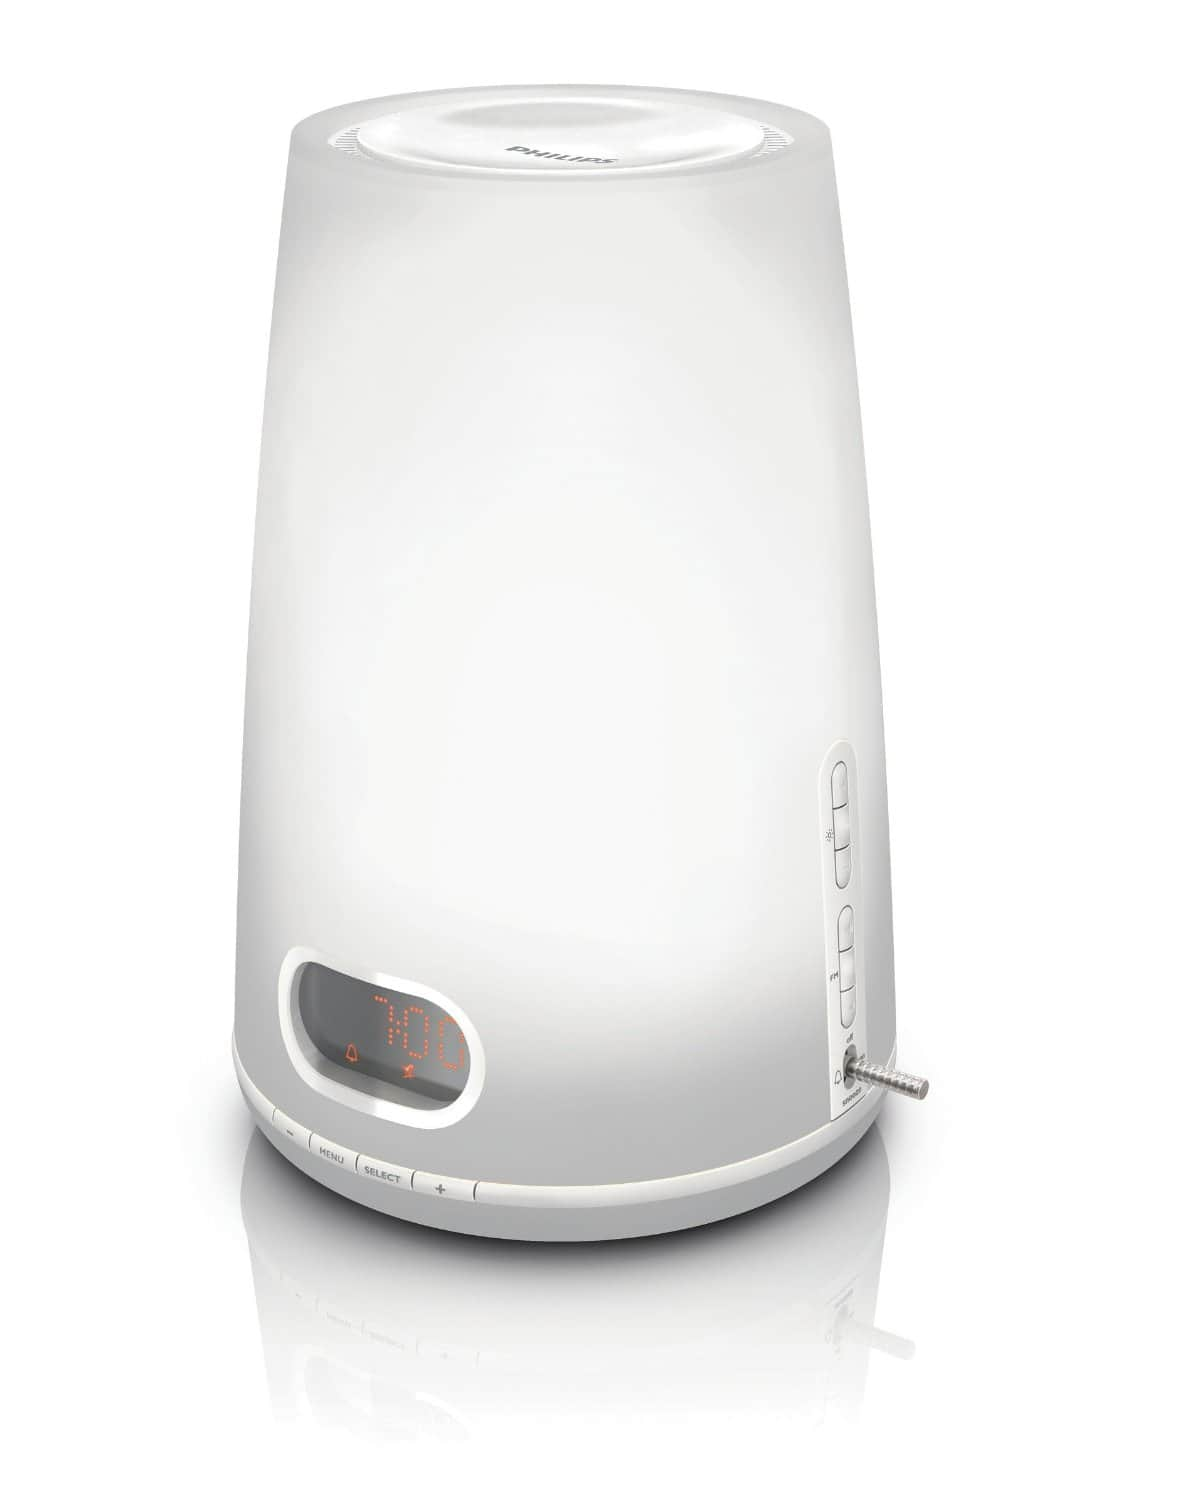 Philips Wake Up Lights: Hf3470 $60, HF3520 $100, HF3510 $110, HF3550/60 $160 + Free shipping